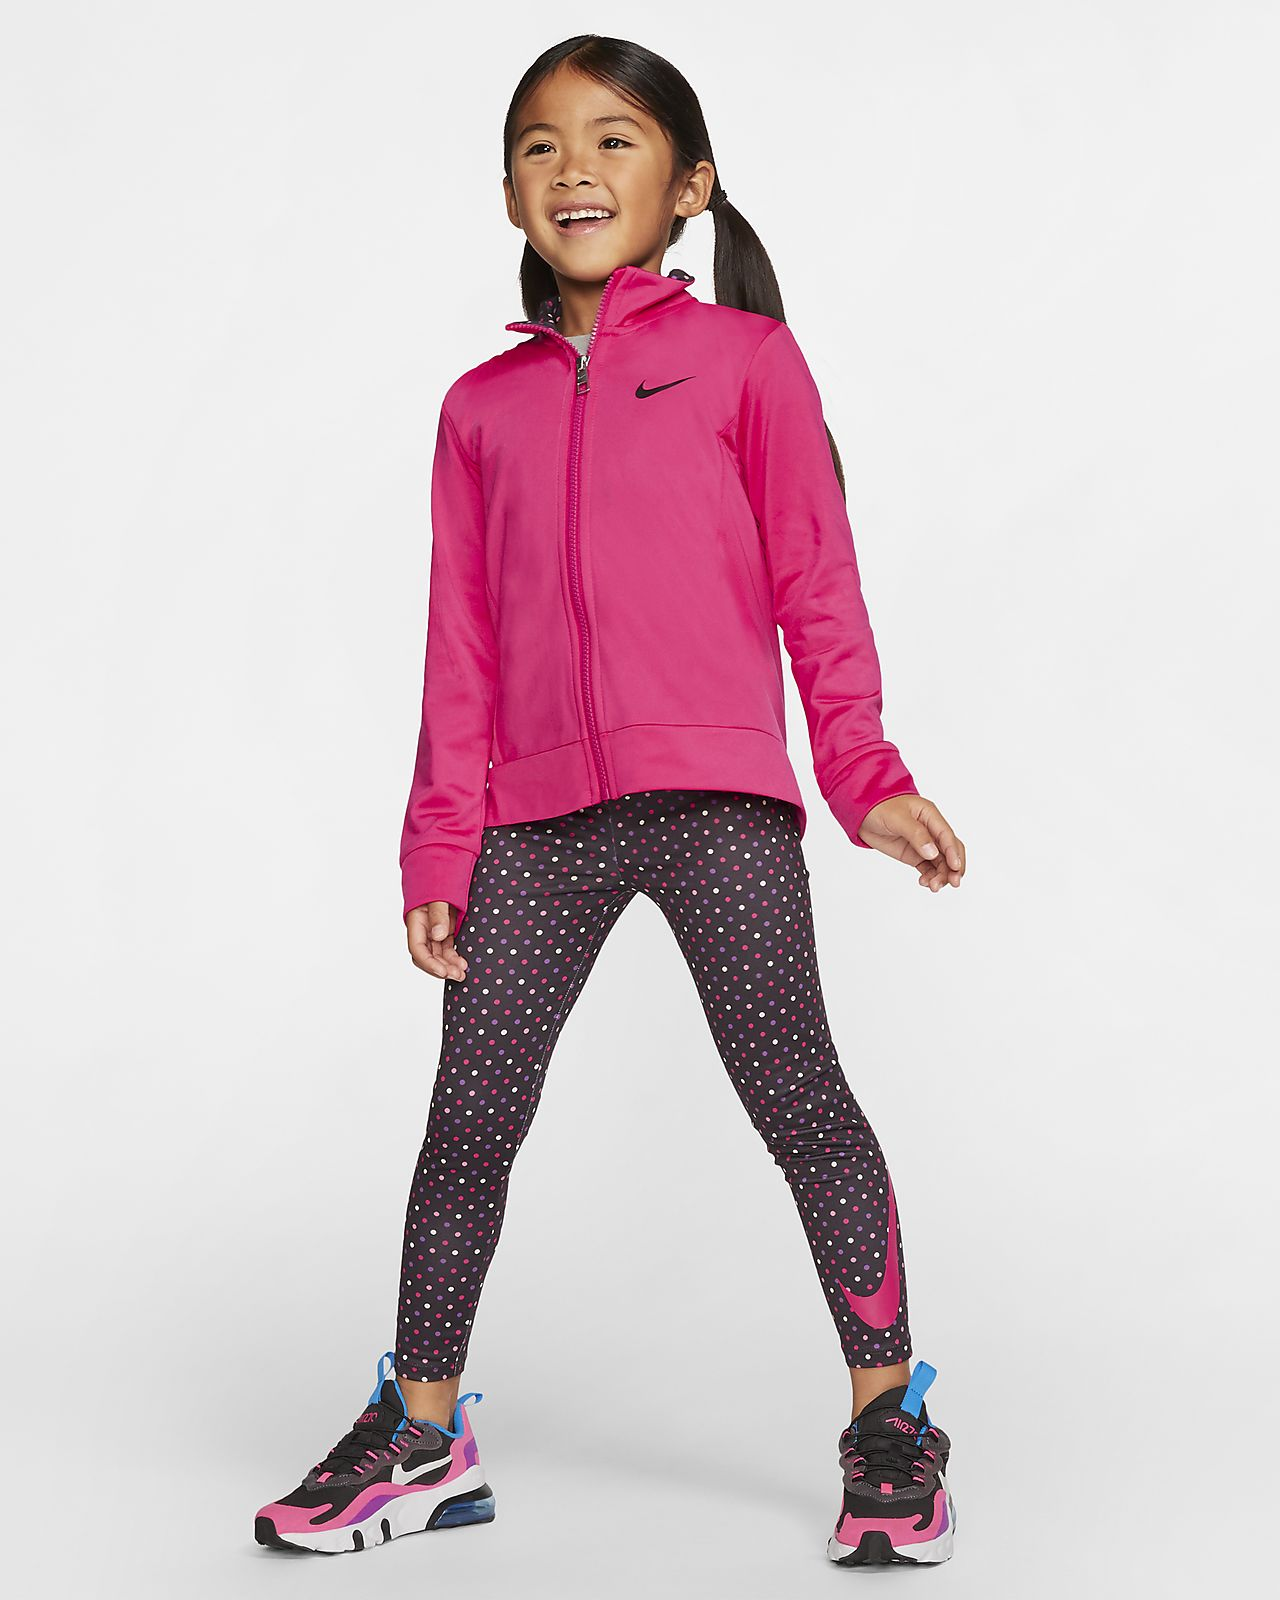 Nike Little Kids' Jacket and Leggings Set